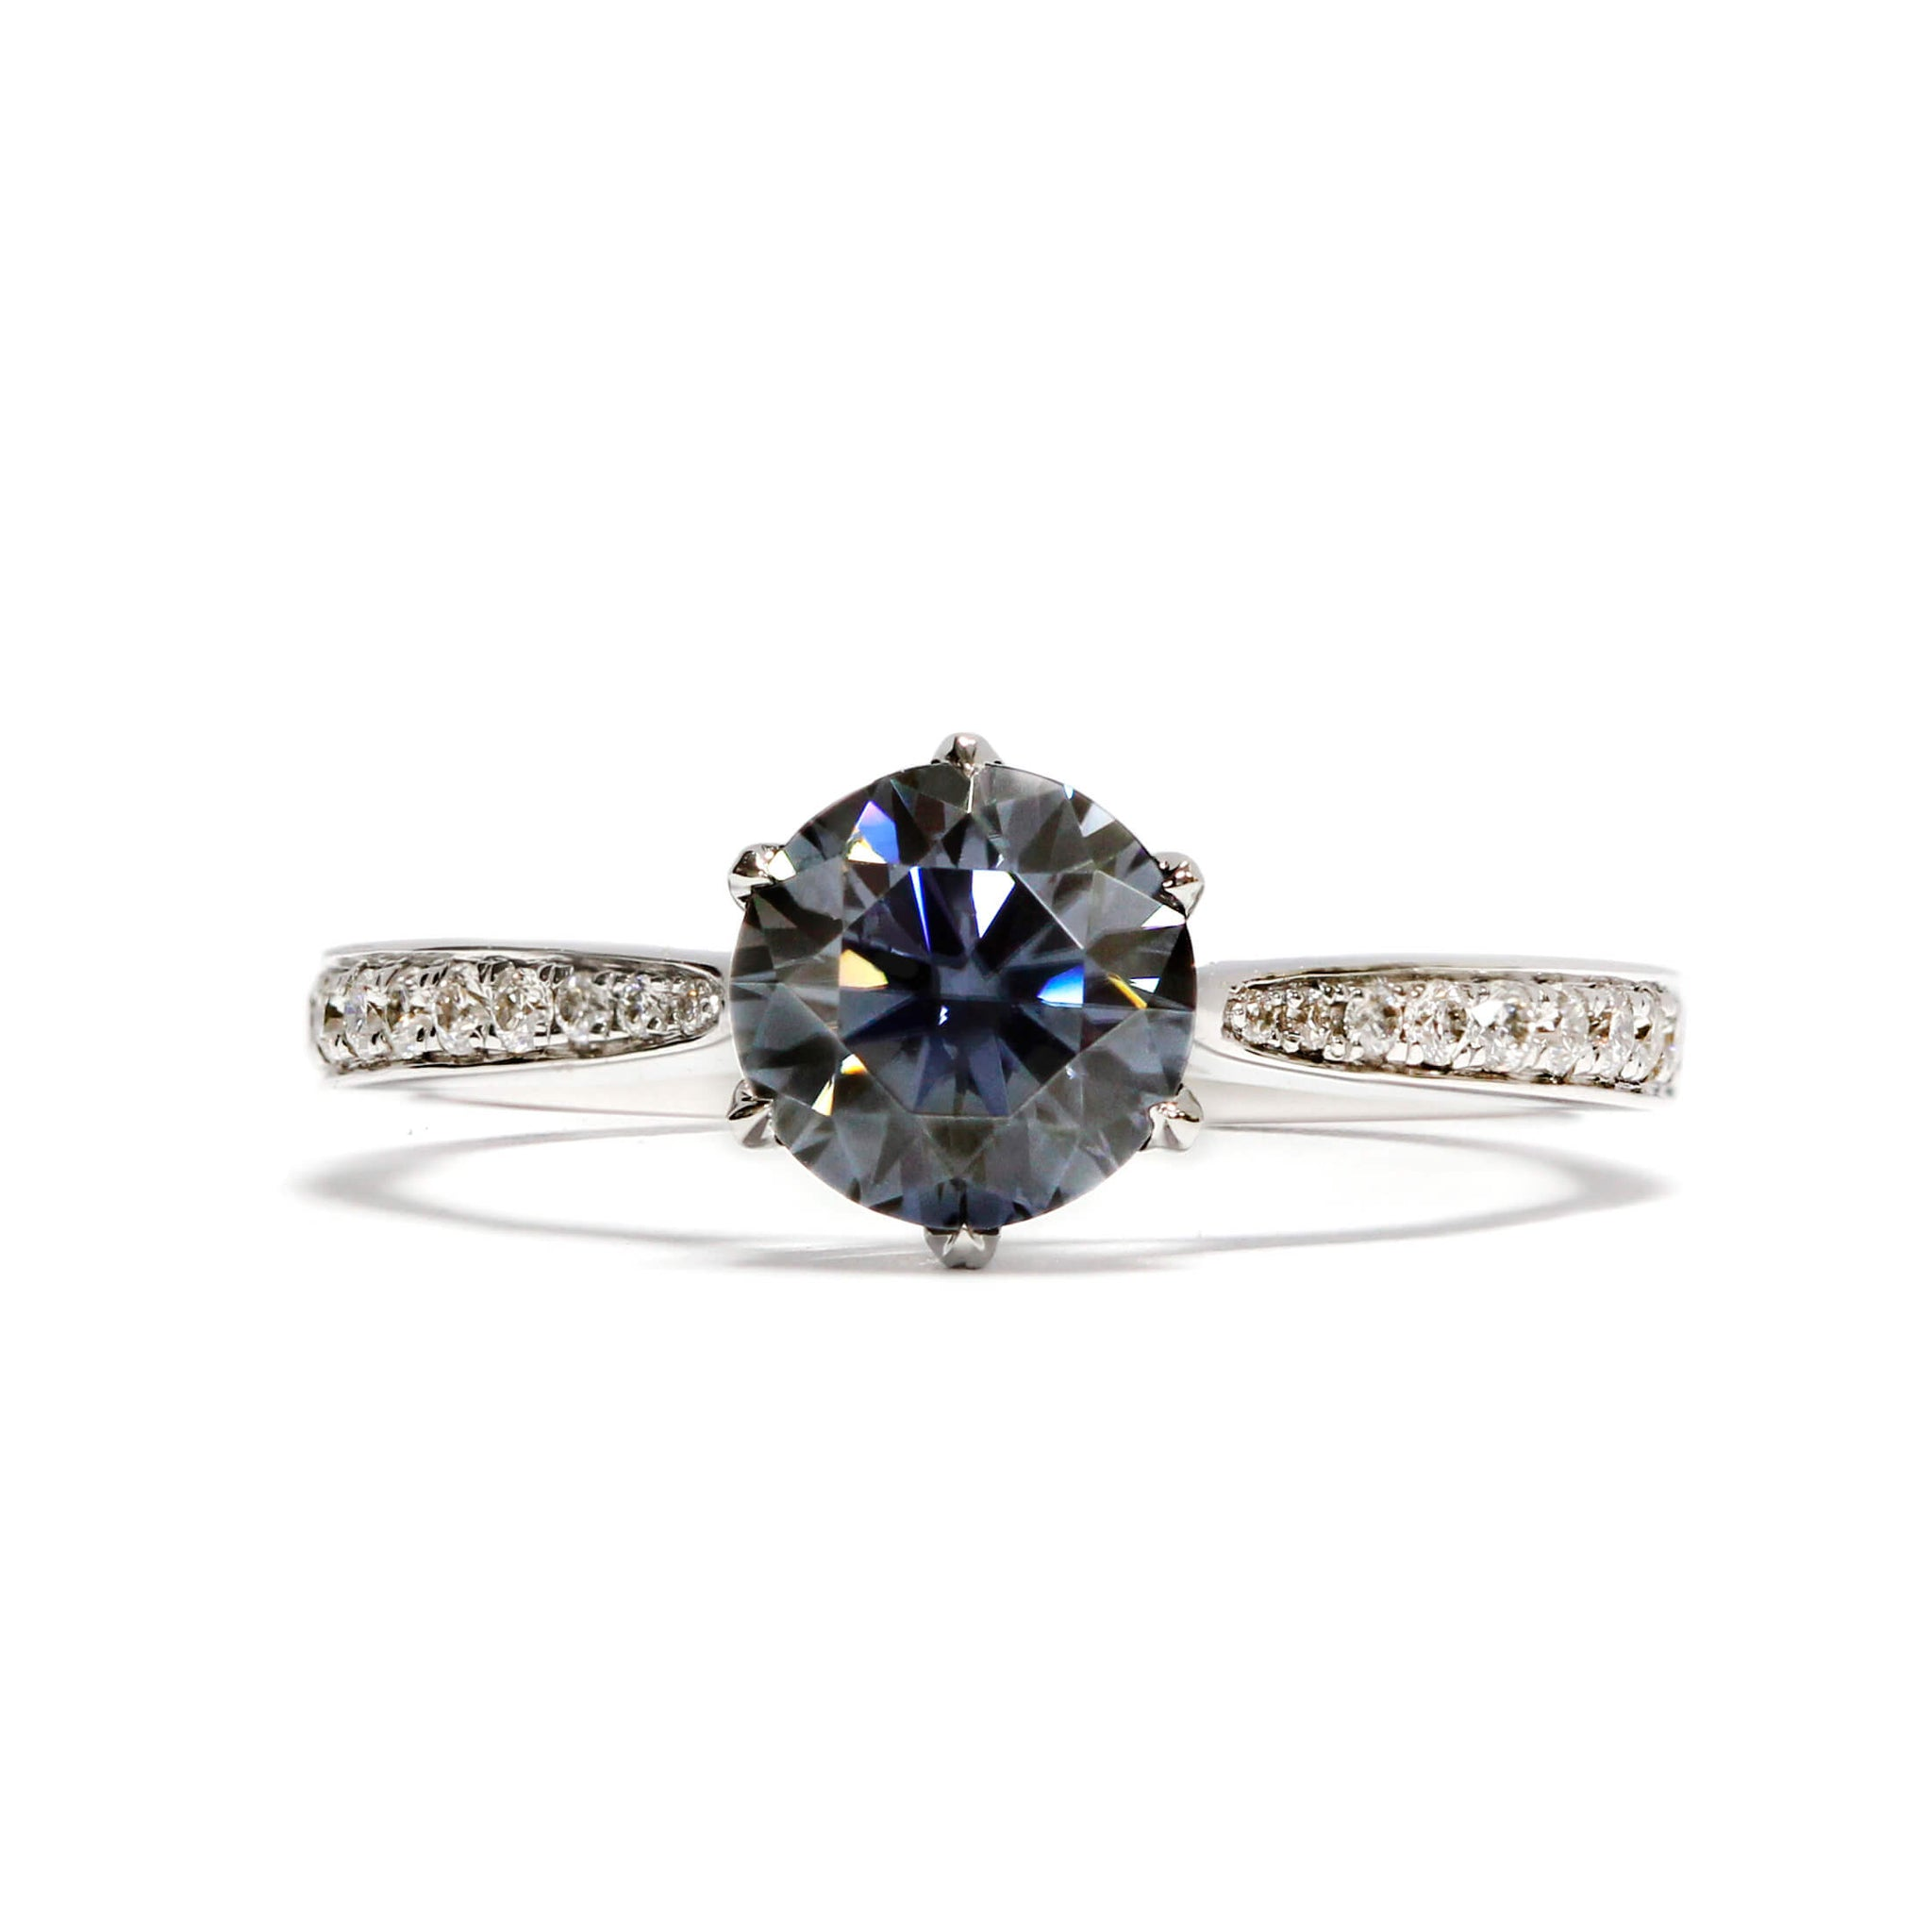 1 Carat Round Grey Moissanite Accent Ring - LeCaine Gems